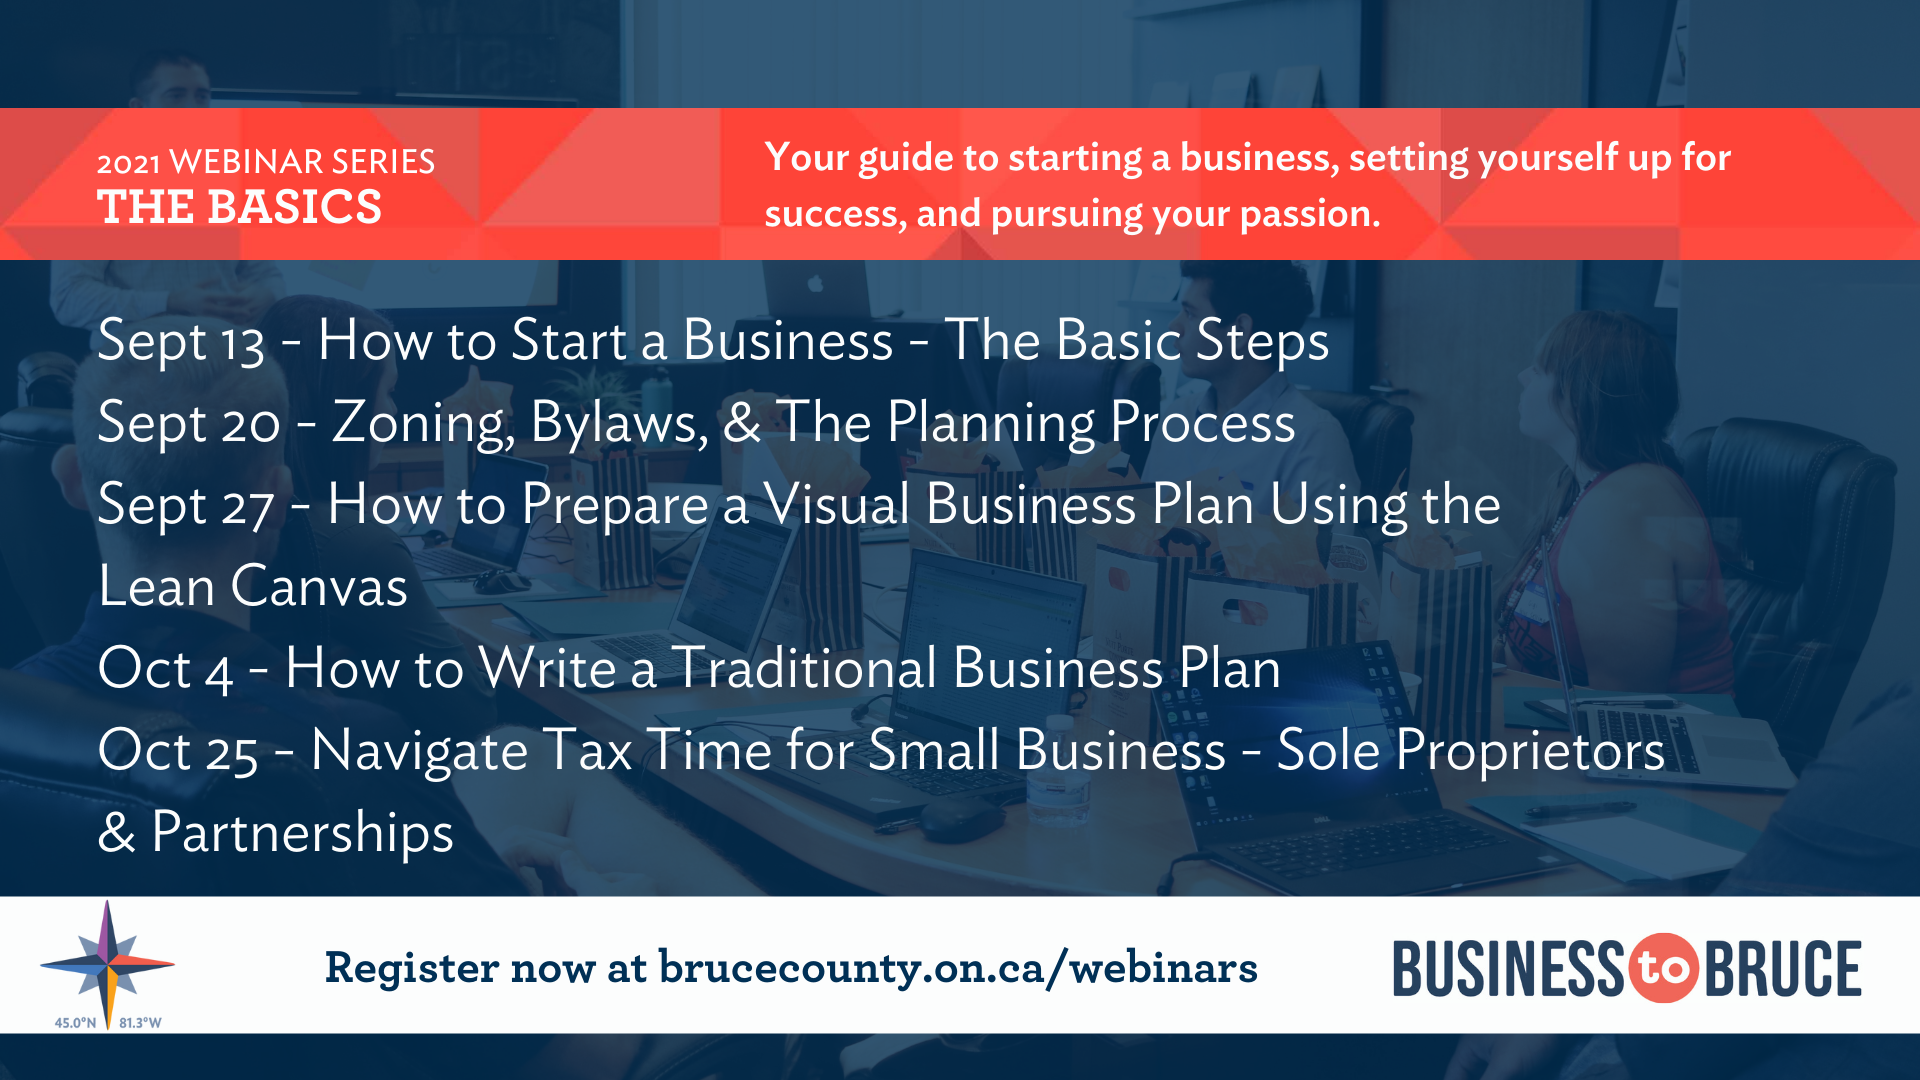 Business to Bruce Poster: The Basics Series - Your guide to starting a business, setting yourself up for success, and pursuing your passion.